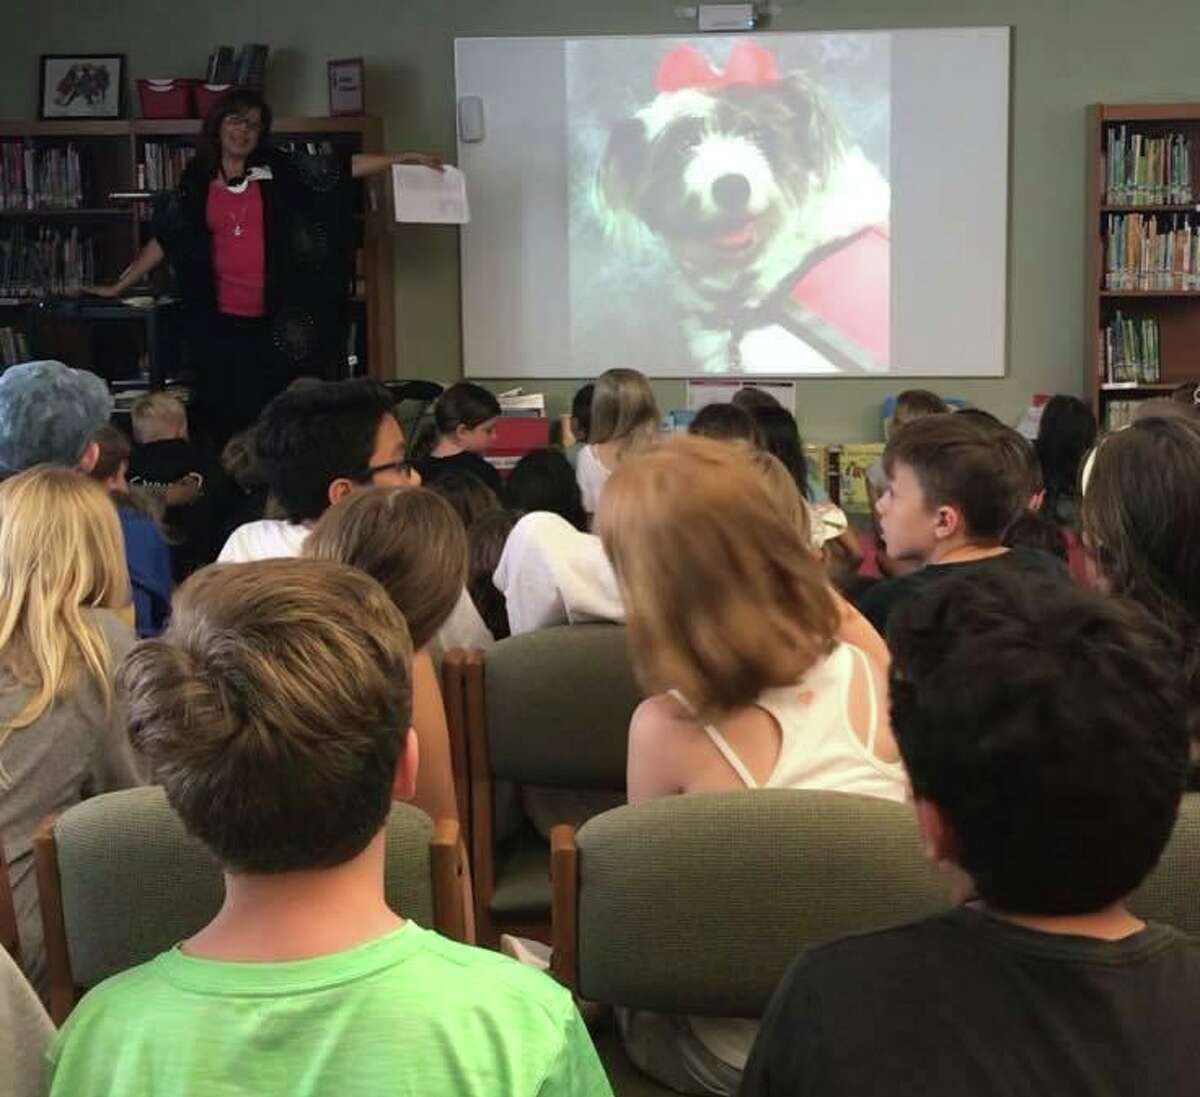 The Woodlands author Susan Langlois wants her new book, Dolly does her job, to possibly inspire other schools to get comfort dogs like Dolly to work with the students.